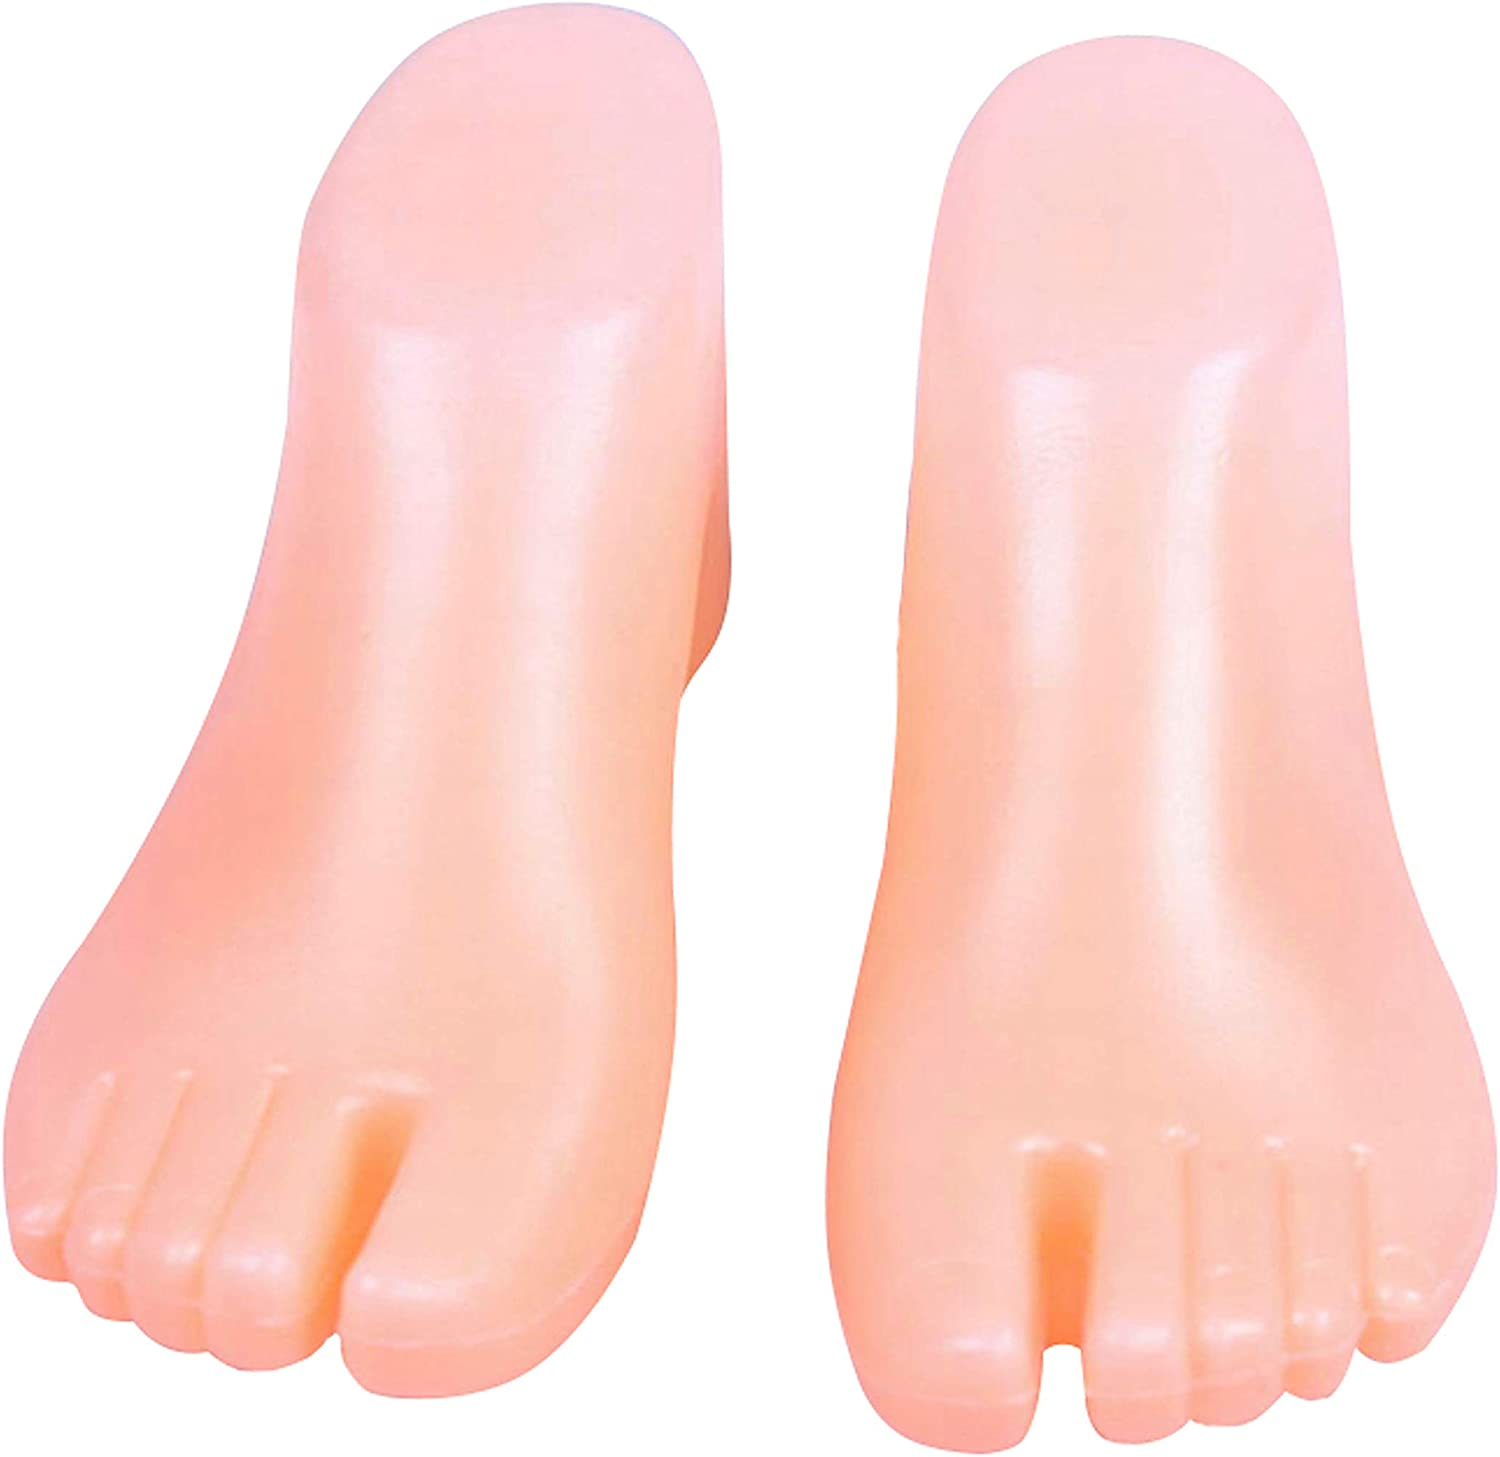 1 Pair Plastic Foot Model Tools for Ankle-High Shoes Display (Fleshtone) 71KtfEjzZ1L